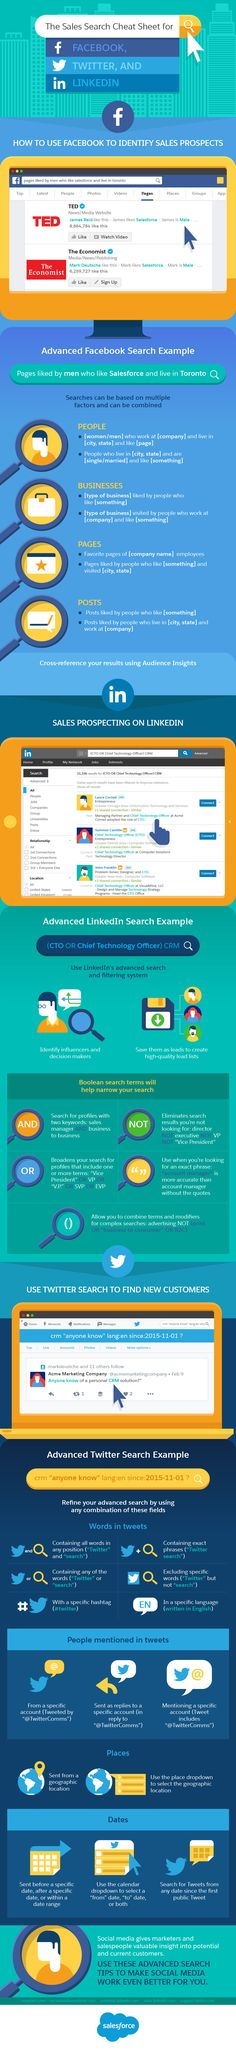 HOW TO SEARCH FOR PROSPECTS ON FACEBOOK, LINKEDIN AND TWITTER [INFOGRAPHIC]